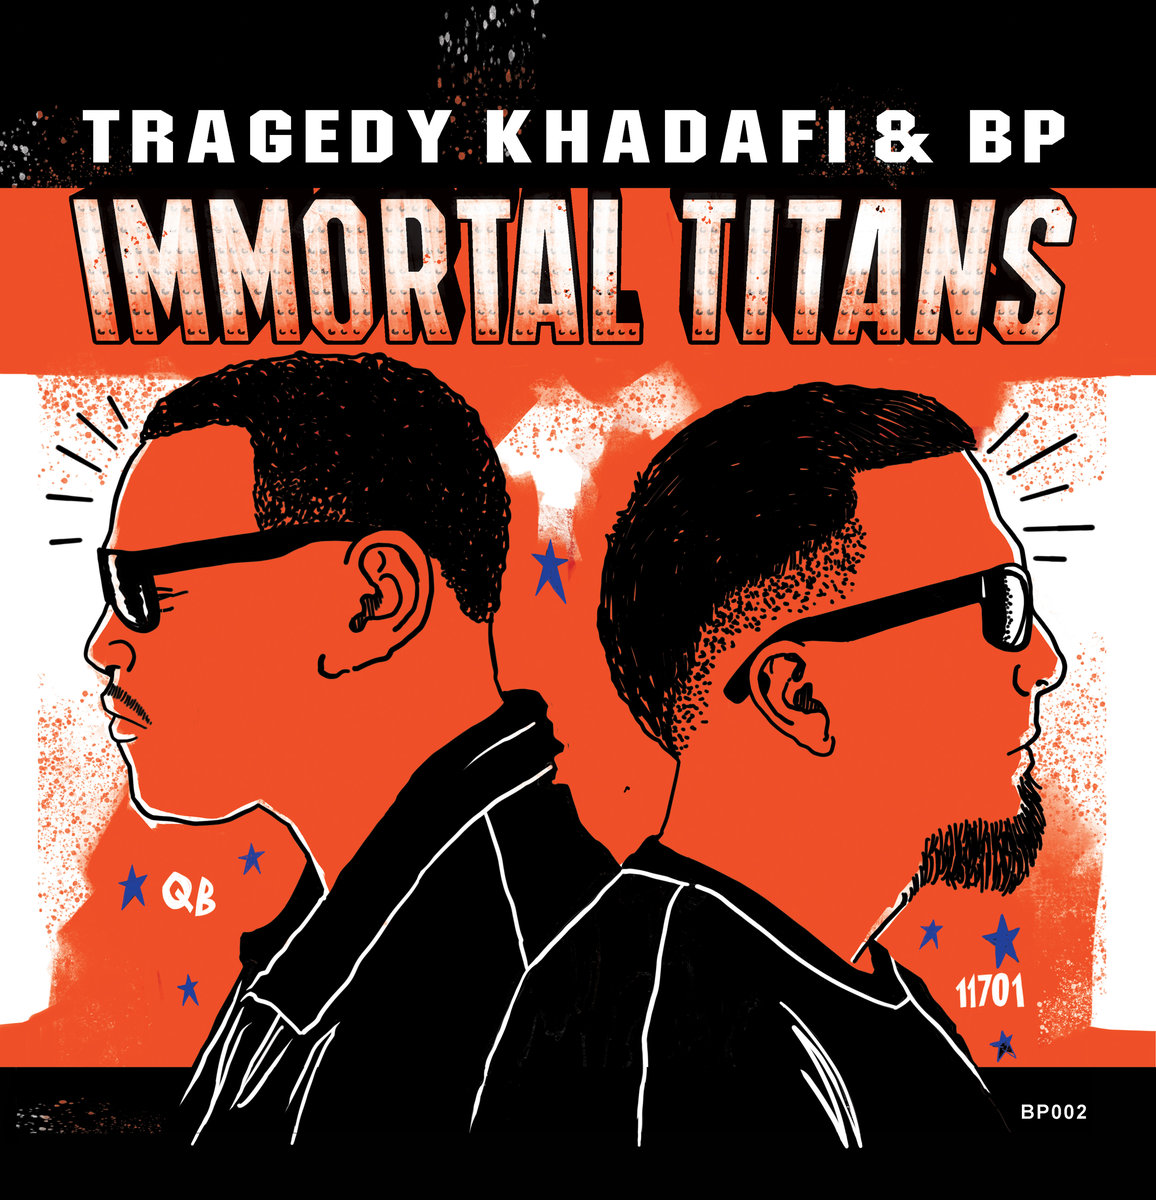 Immortal_titans